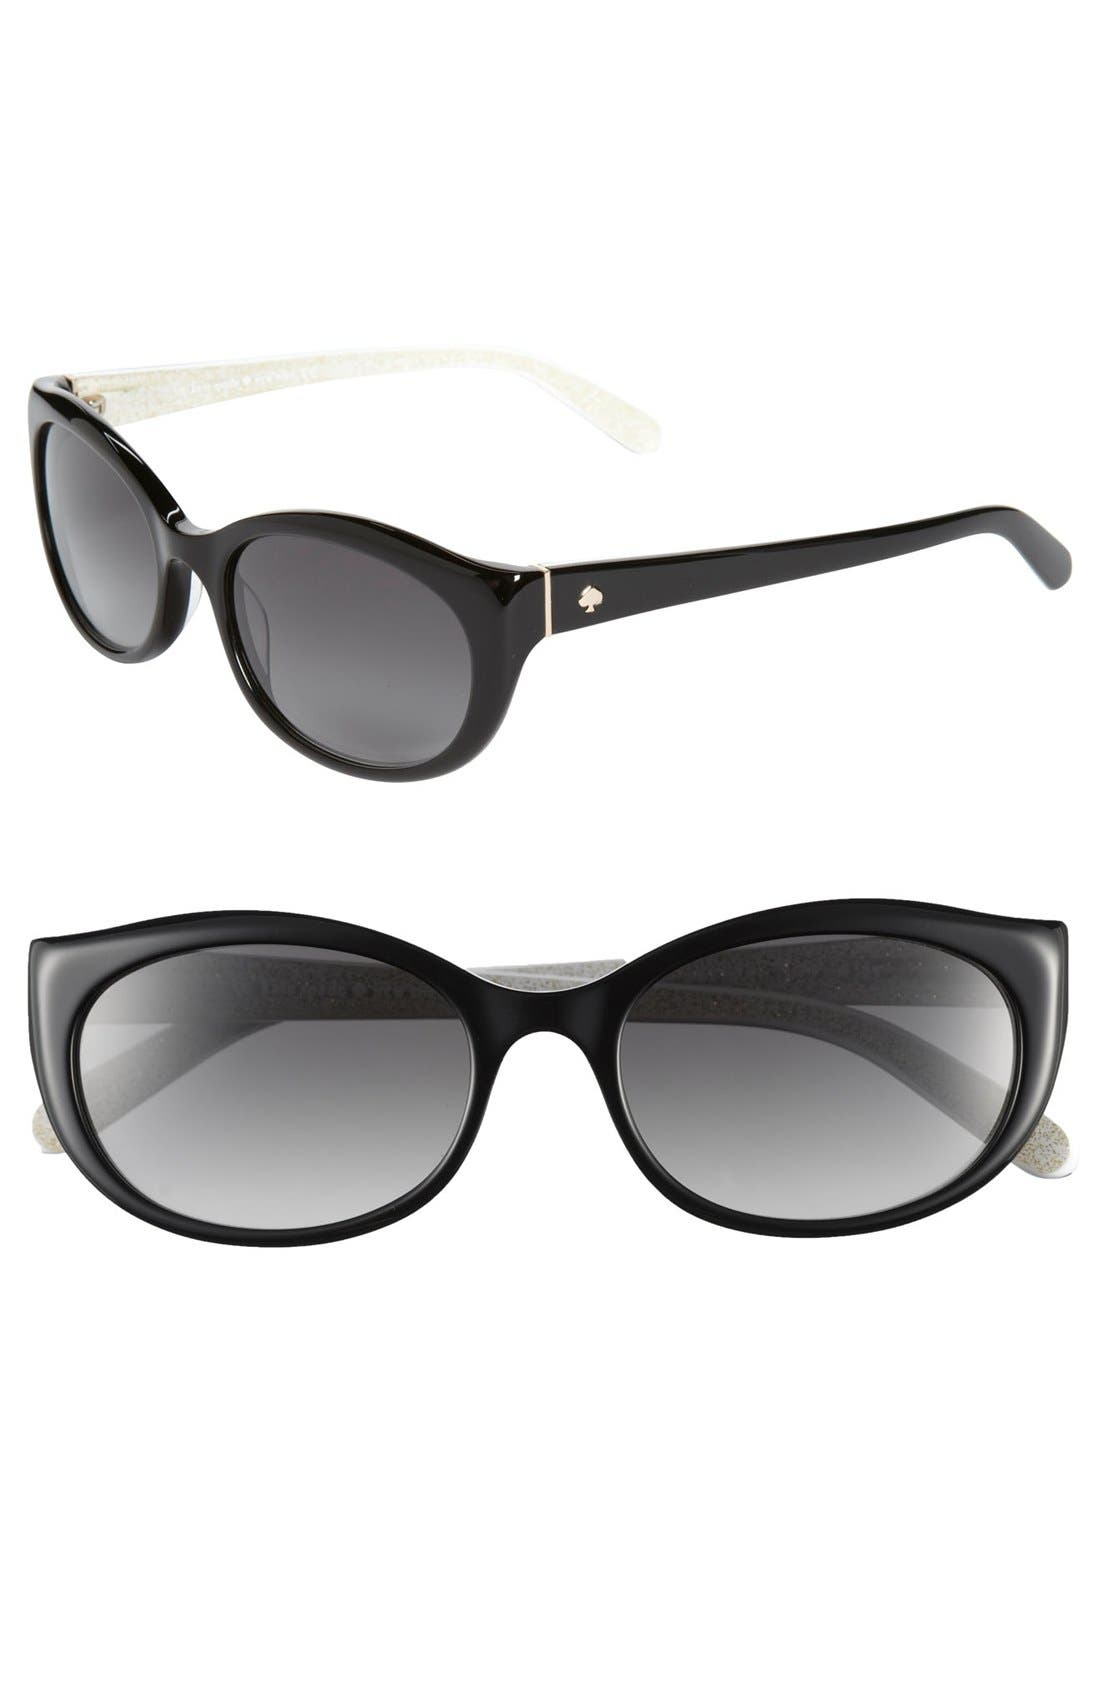 Alternate Image 1 Selected - kate spade new york 'phyllis' 52mm sunglasses